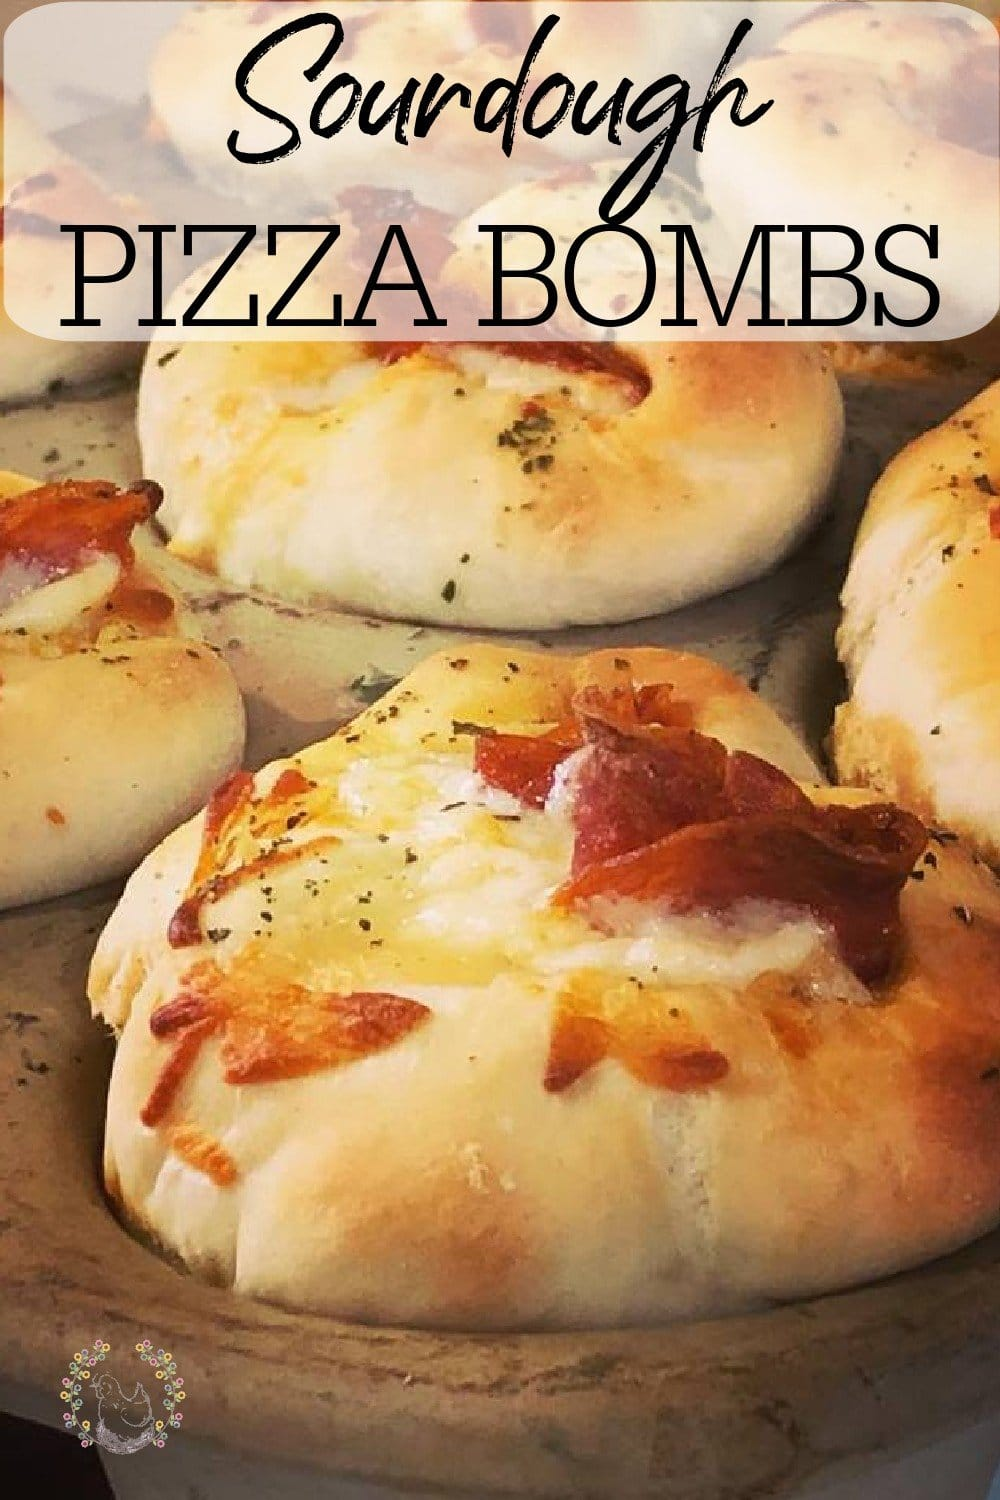 Sourdough Pizza Bombs are the best handheld pizza snack! If you've been looking for the best pepperoni roll recipe, look no further! You've found it! I especially love that you can fill these pizza rolls with your favorite pizza toppings! #sourdoughrecipes #pizzarolls #pepperonirolls #sourdoughpizza #fromscratchcooking #homemaderecipes #achickandhergarden